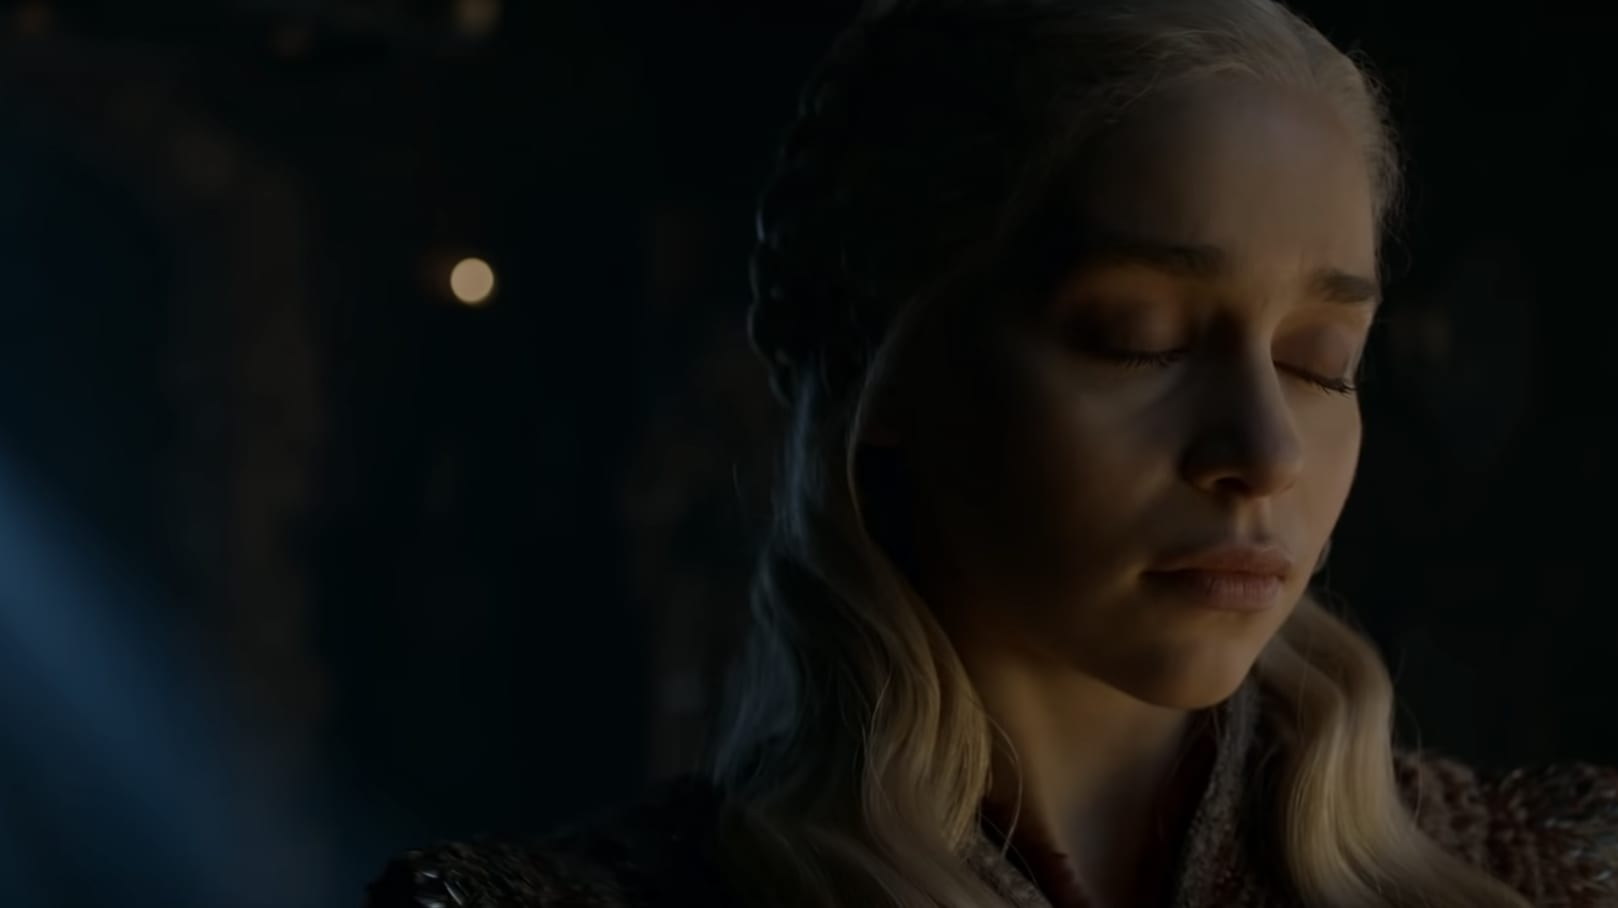 5 Spoilers Revealed in the 'Game of Thrones' Season 8 Trailer